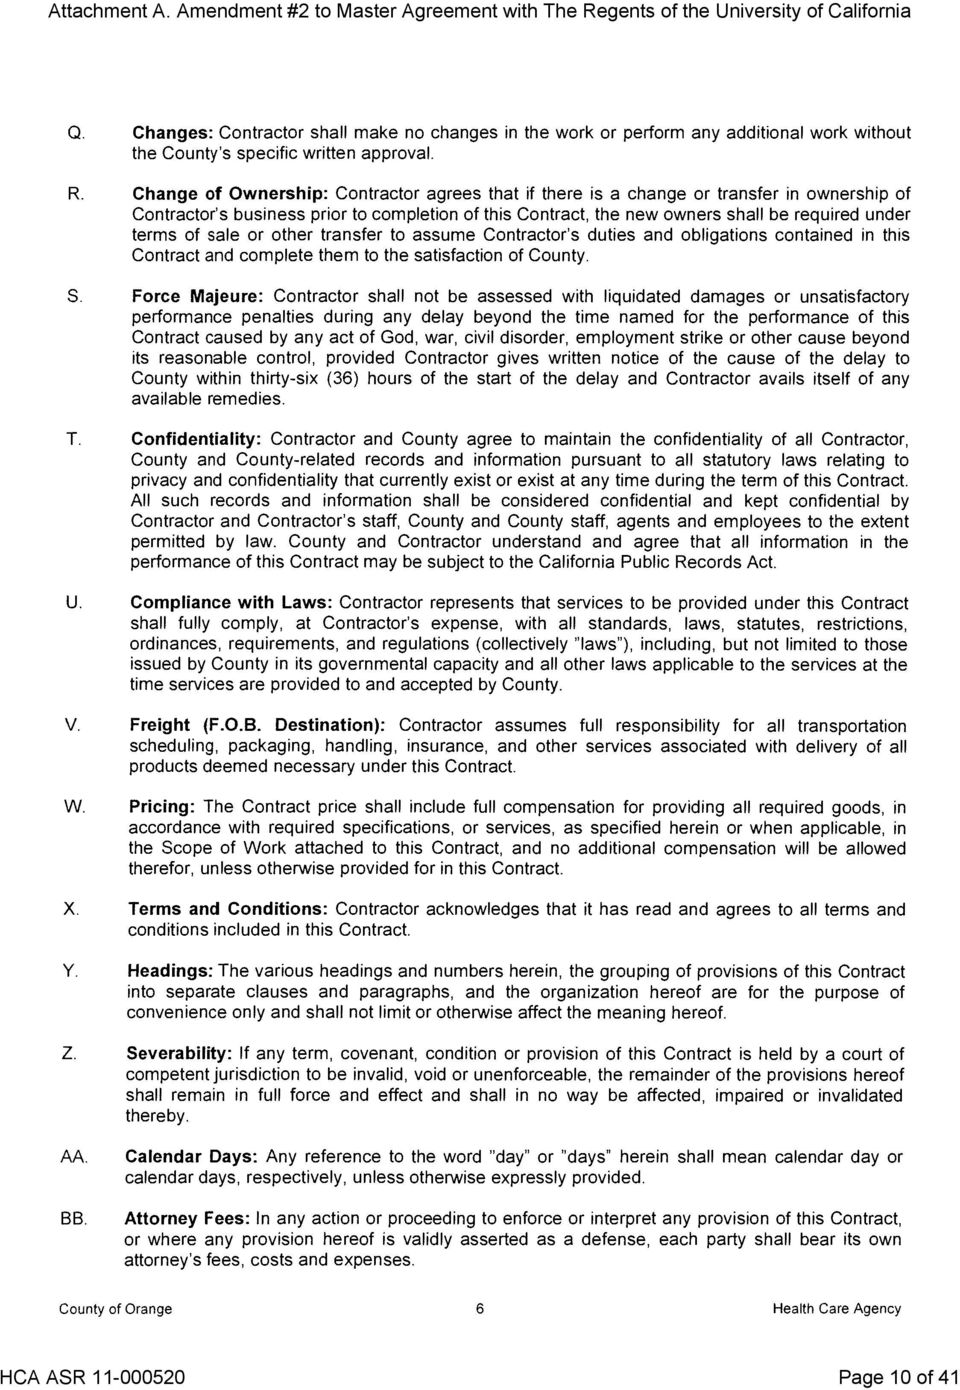 Attachment A Amendment 2 To Master Agreement With The Regents Of